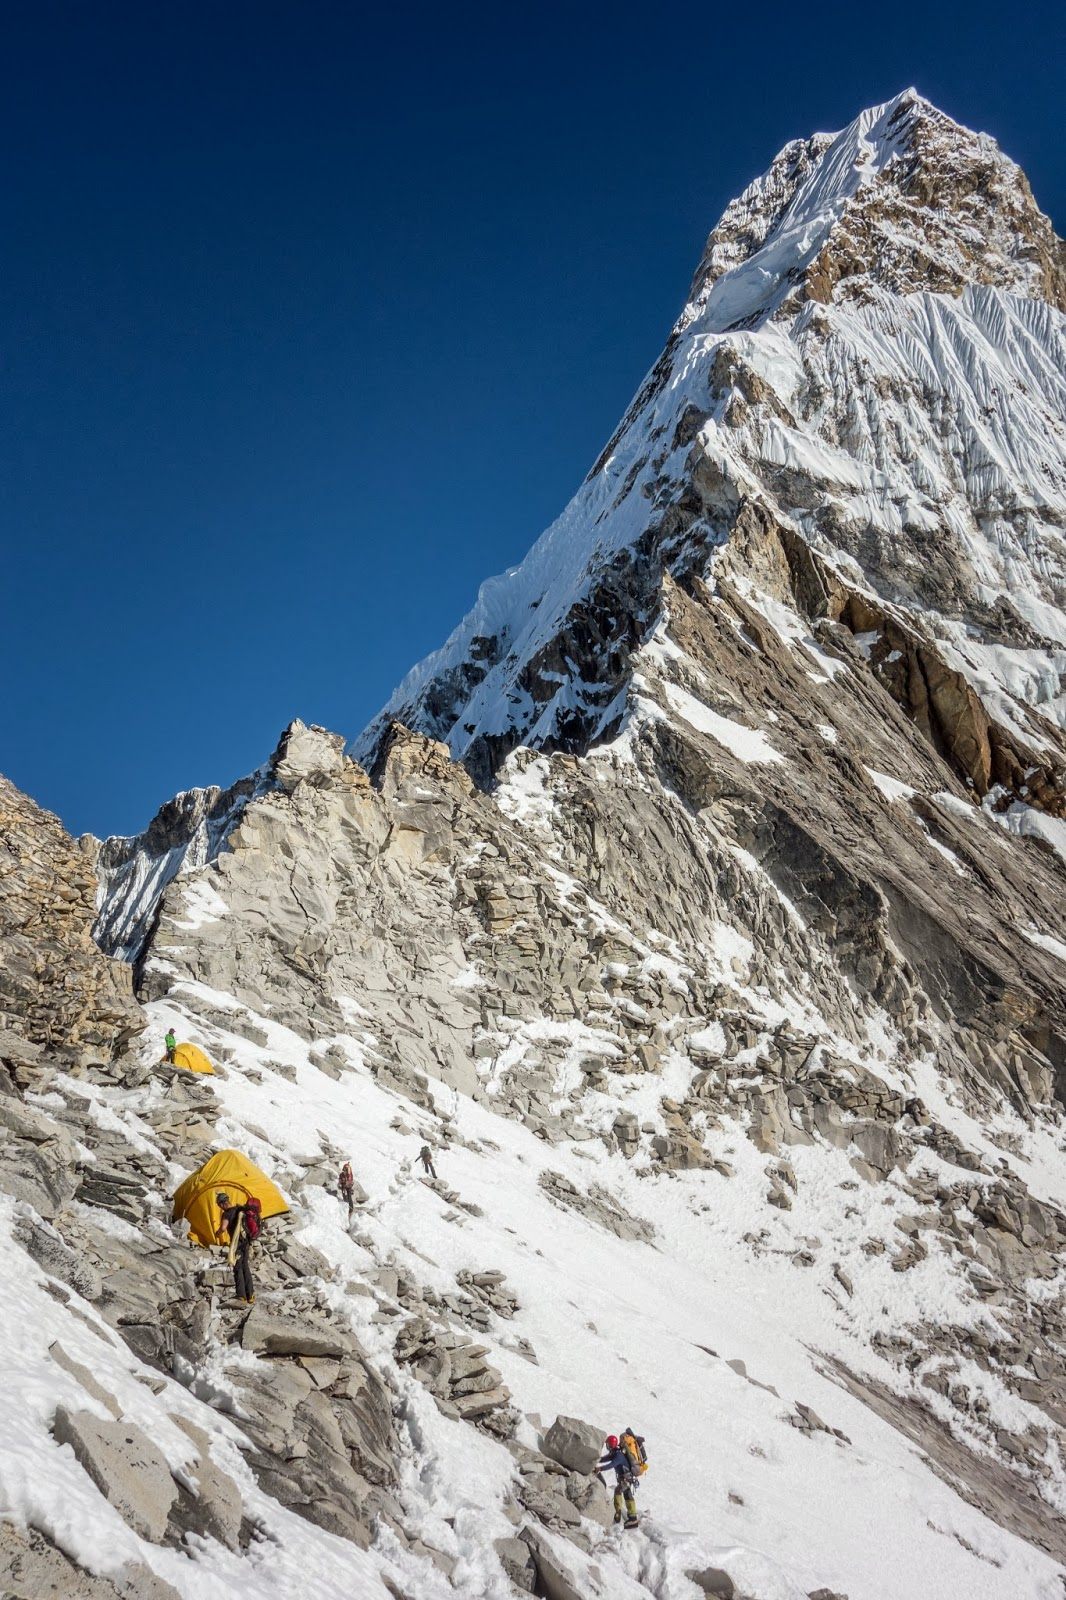 Route from Camp 1 on Ama Dablam